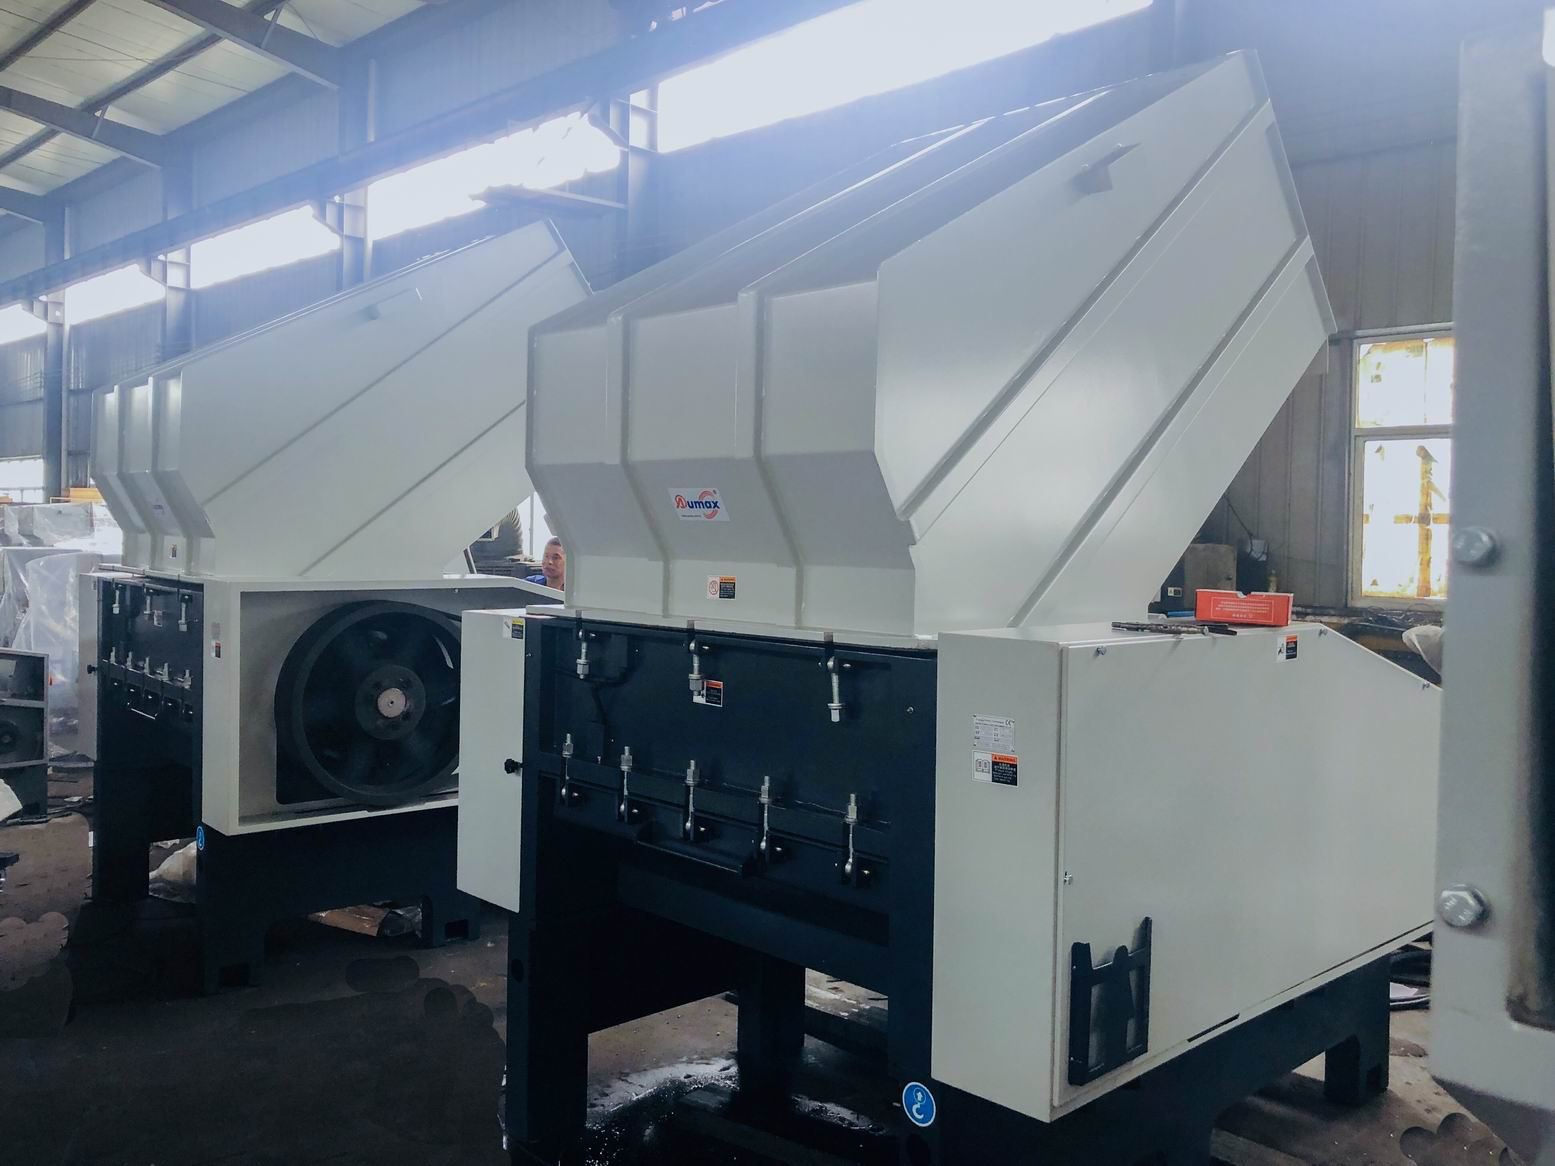 Daily Use, Precautions and Maintenance of Plastic Shredder